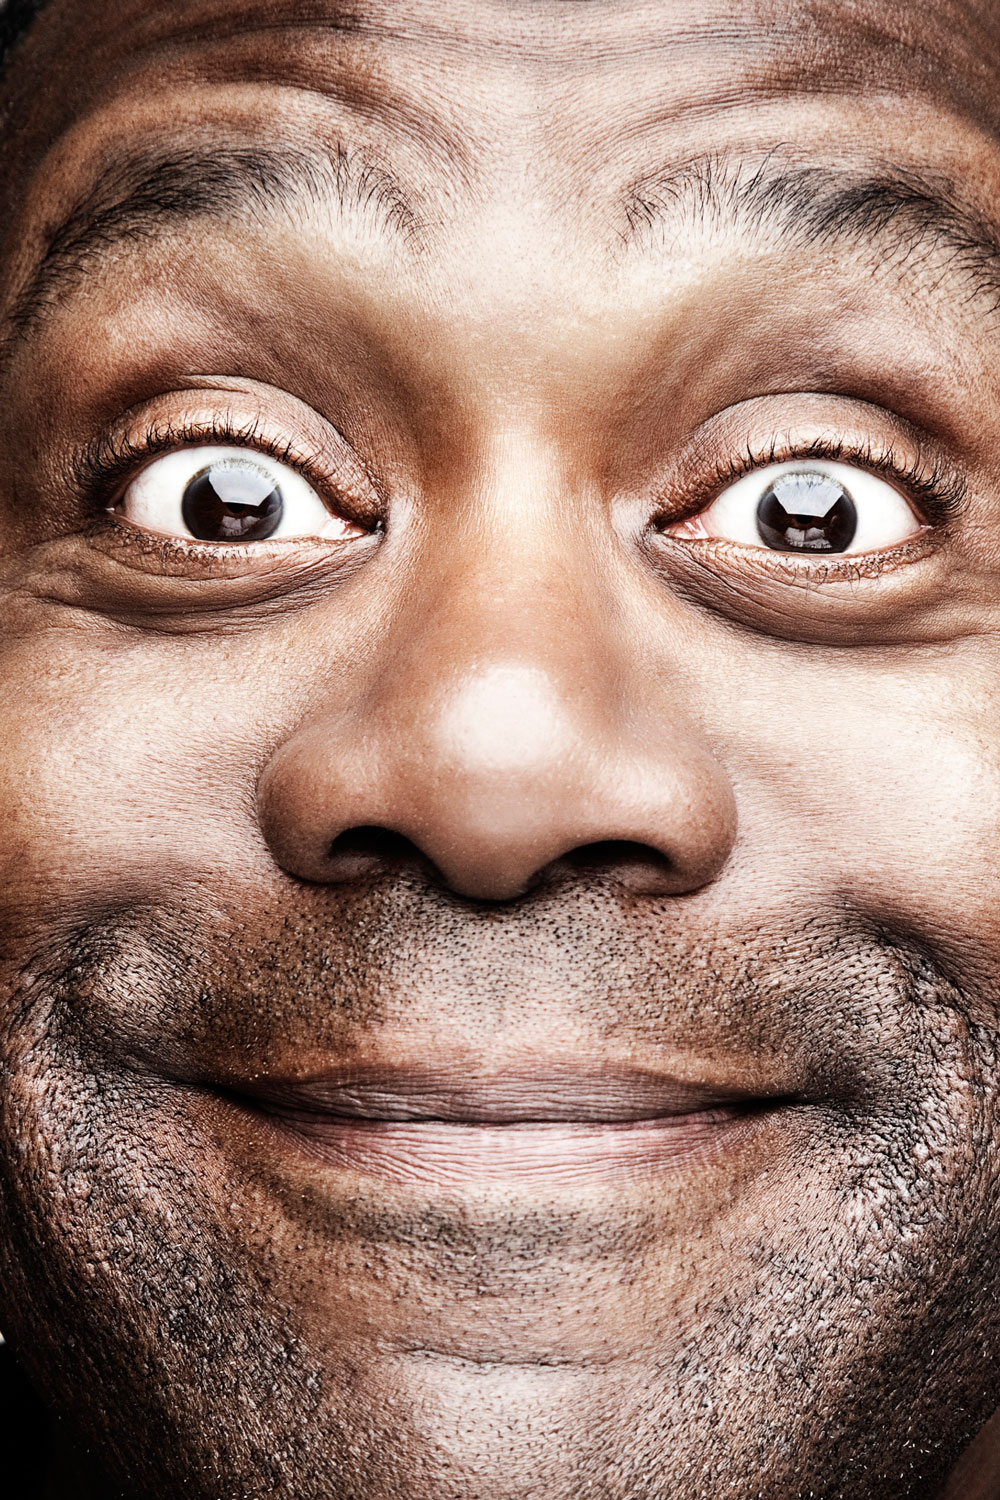 LENNY HENRY PHOTOGRAPHED BY BARRY MCCALL FOR PHO20GRAPHY